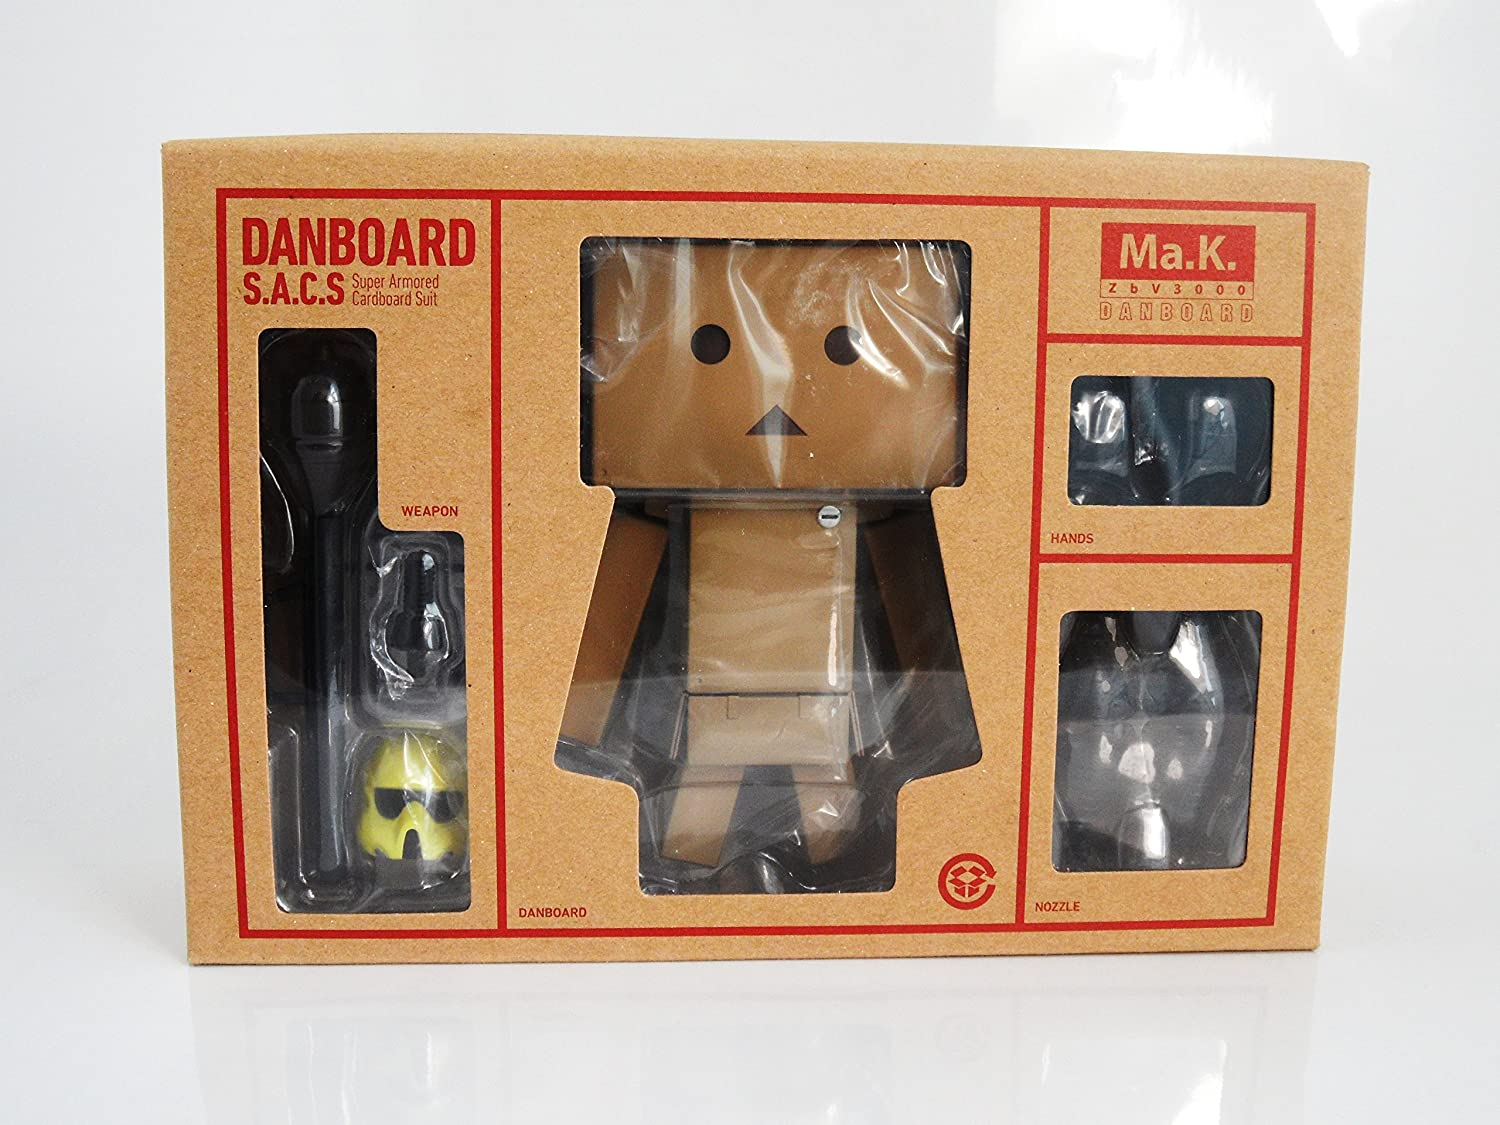 Danboard S.A.C.S sdcc san diego comic con 2014 Ma.K star wars exclusive armored suit Yellow Yotsuba